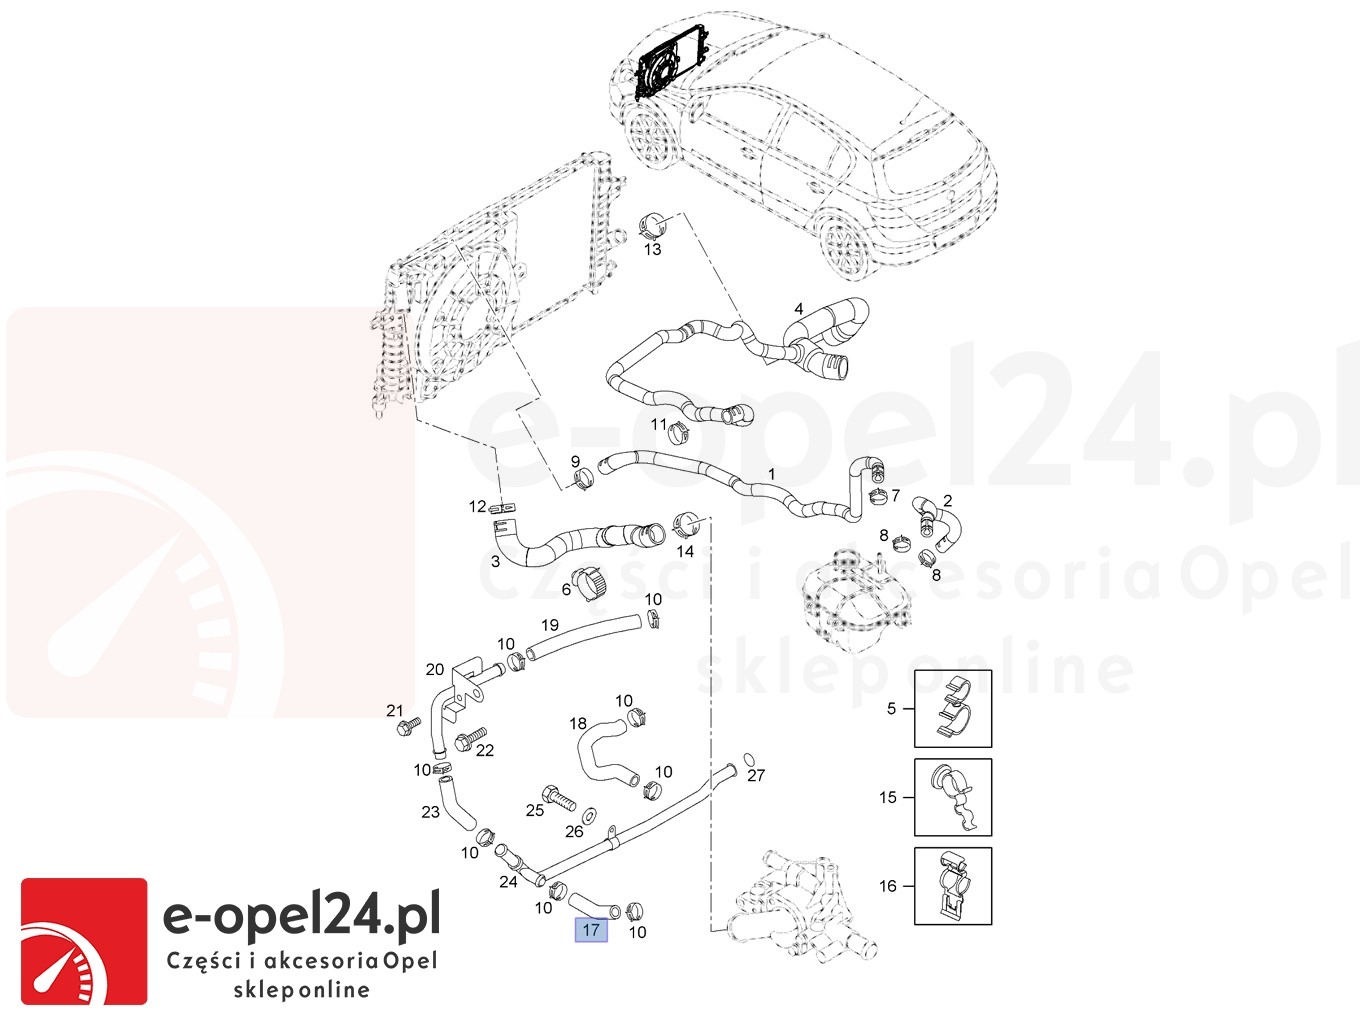 Camshaft sensor engine telltale lights up further 2015 Mazda 3 Stereo Wiring Diagram Fresh Mazda 6 Stereo Wiring Diagram And Speaker Roc Grp likewise Starting System Wiring Diagram Youtube Starter besides Vectra C Wiring Diagram moreover Ford Clutch Replacement Page. on vauxhall astra fuse diagram